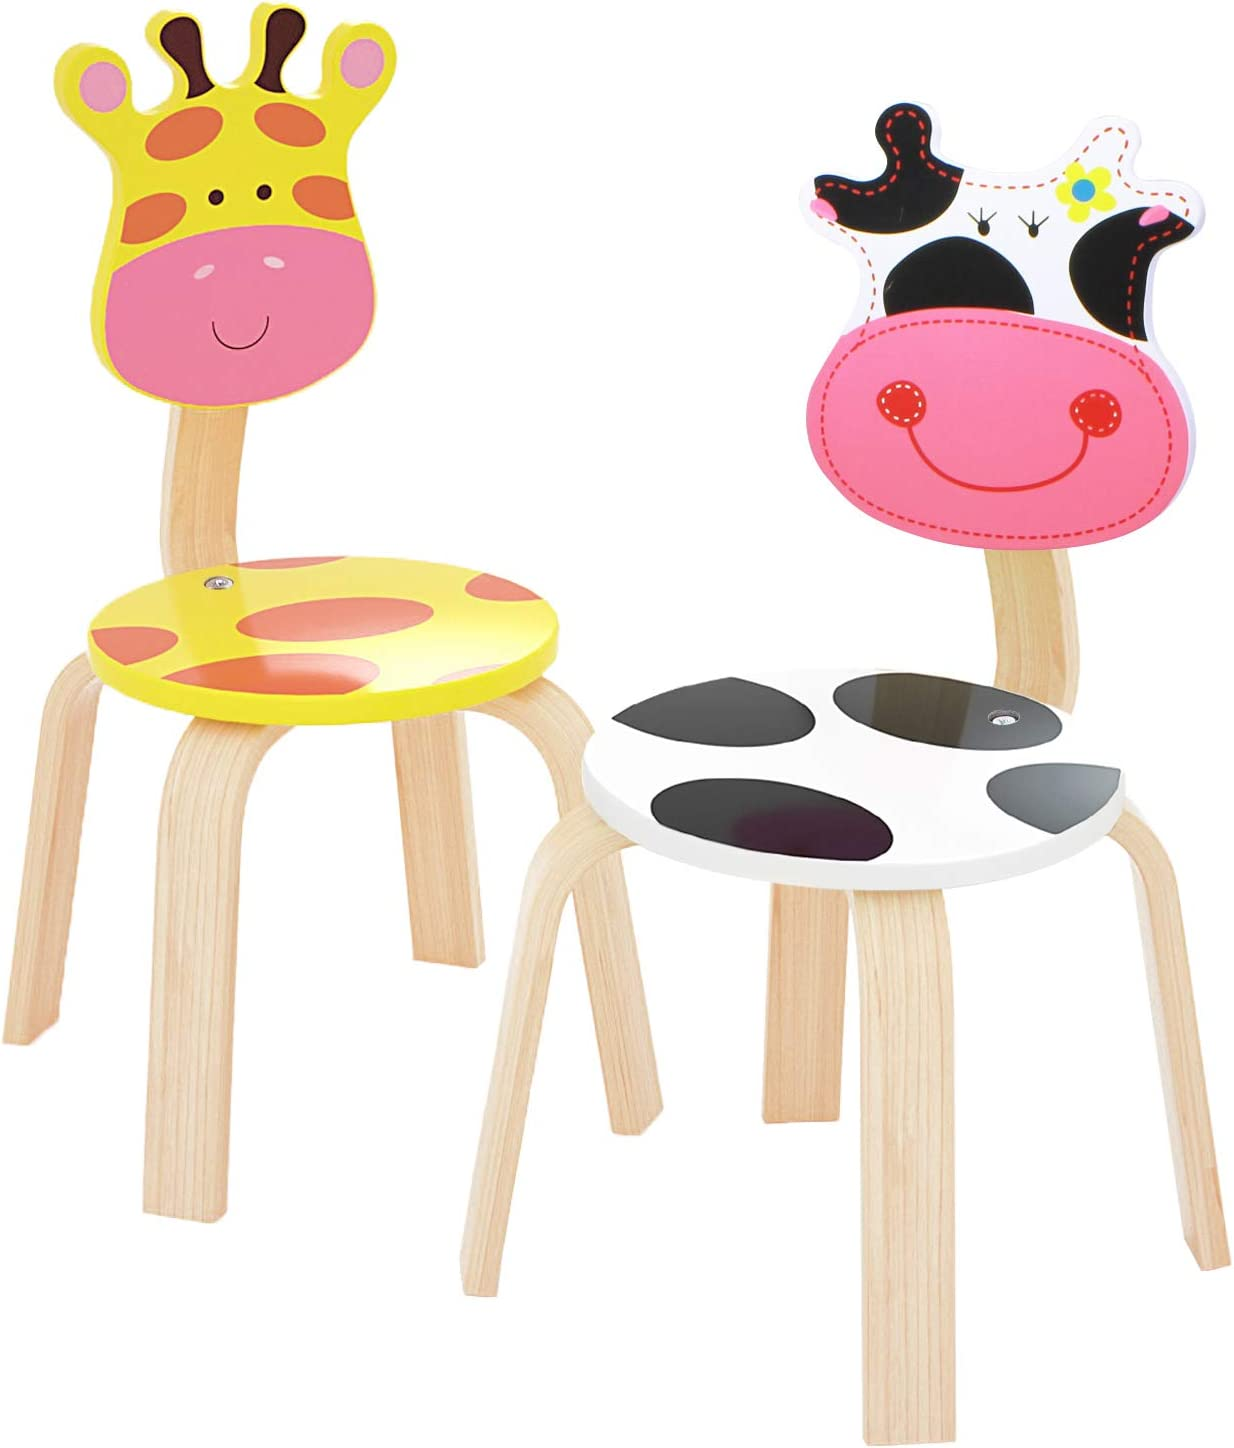 iPlay, iLearn 2 PCS Wooden Kids Chair Sets, Natural Hardwood Giraffe & Cow Animal Children Chairs, Furniture Set for Toddlers Kids Boys Girls, Stackable for Playroom, Nursery, Preschool, Kindergarten